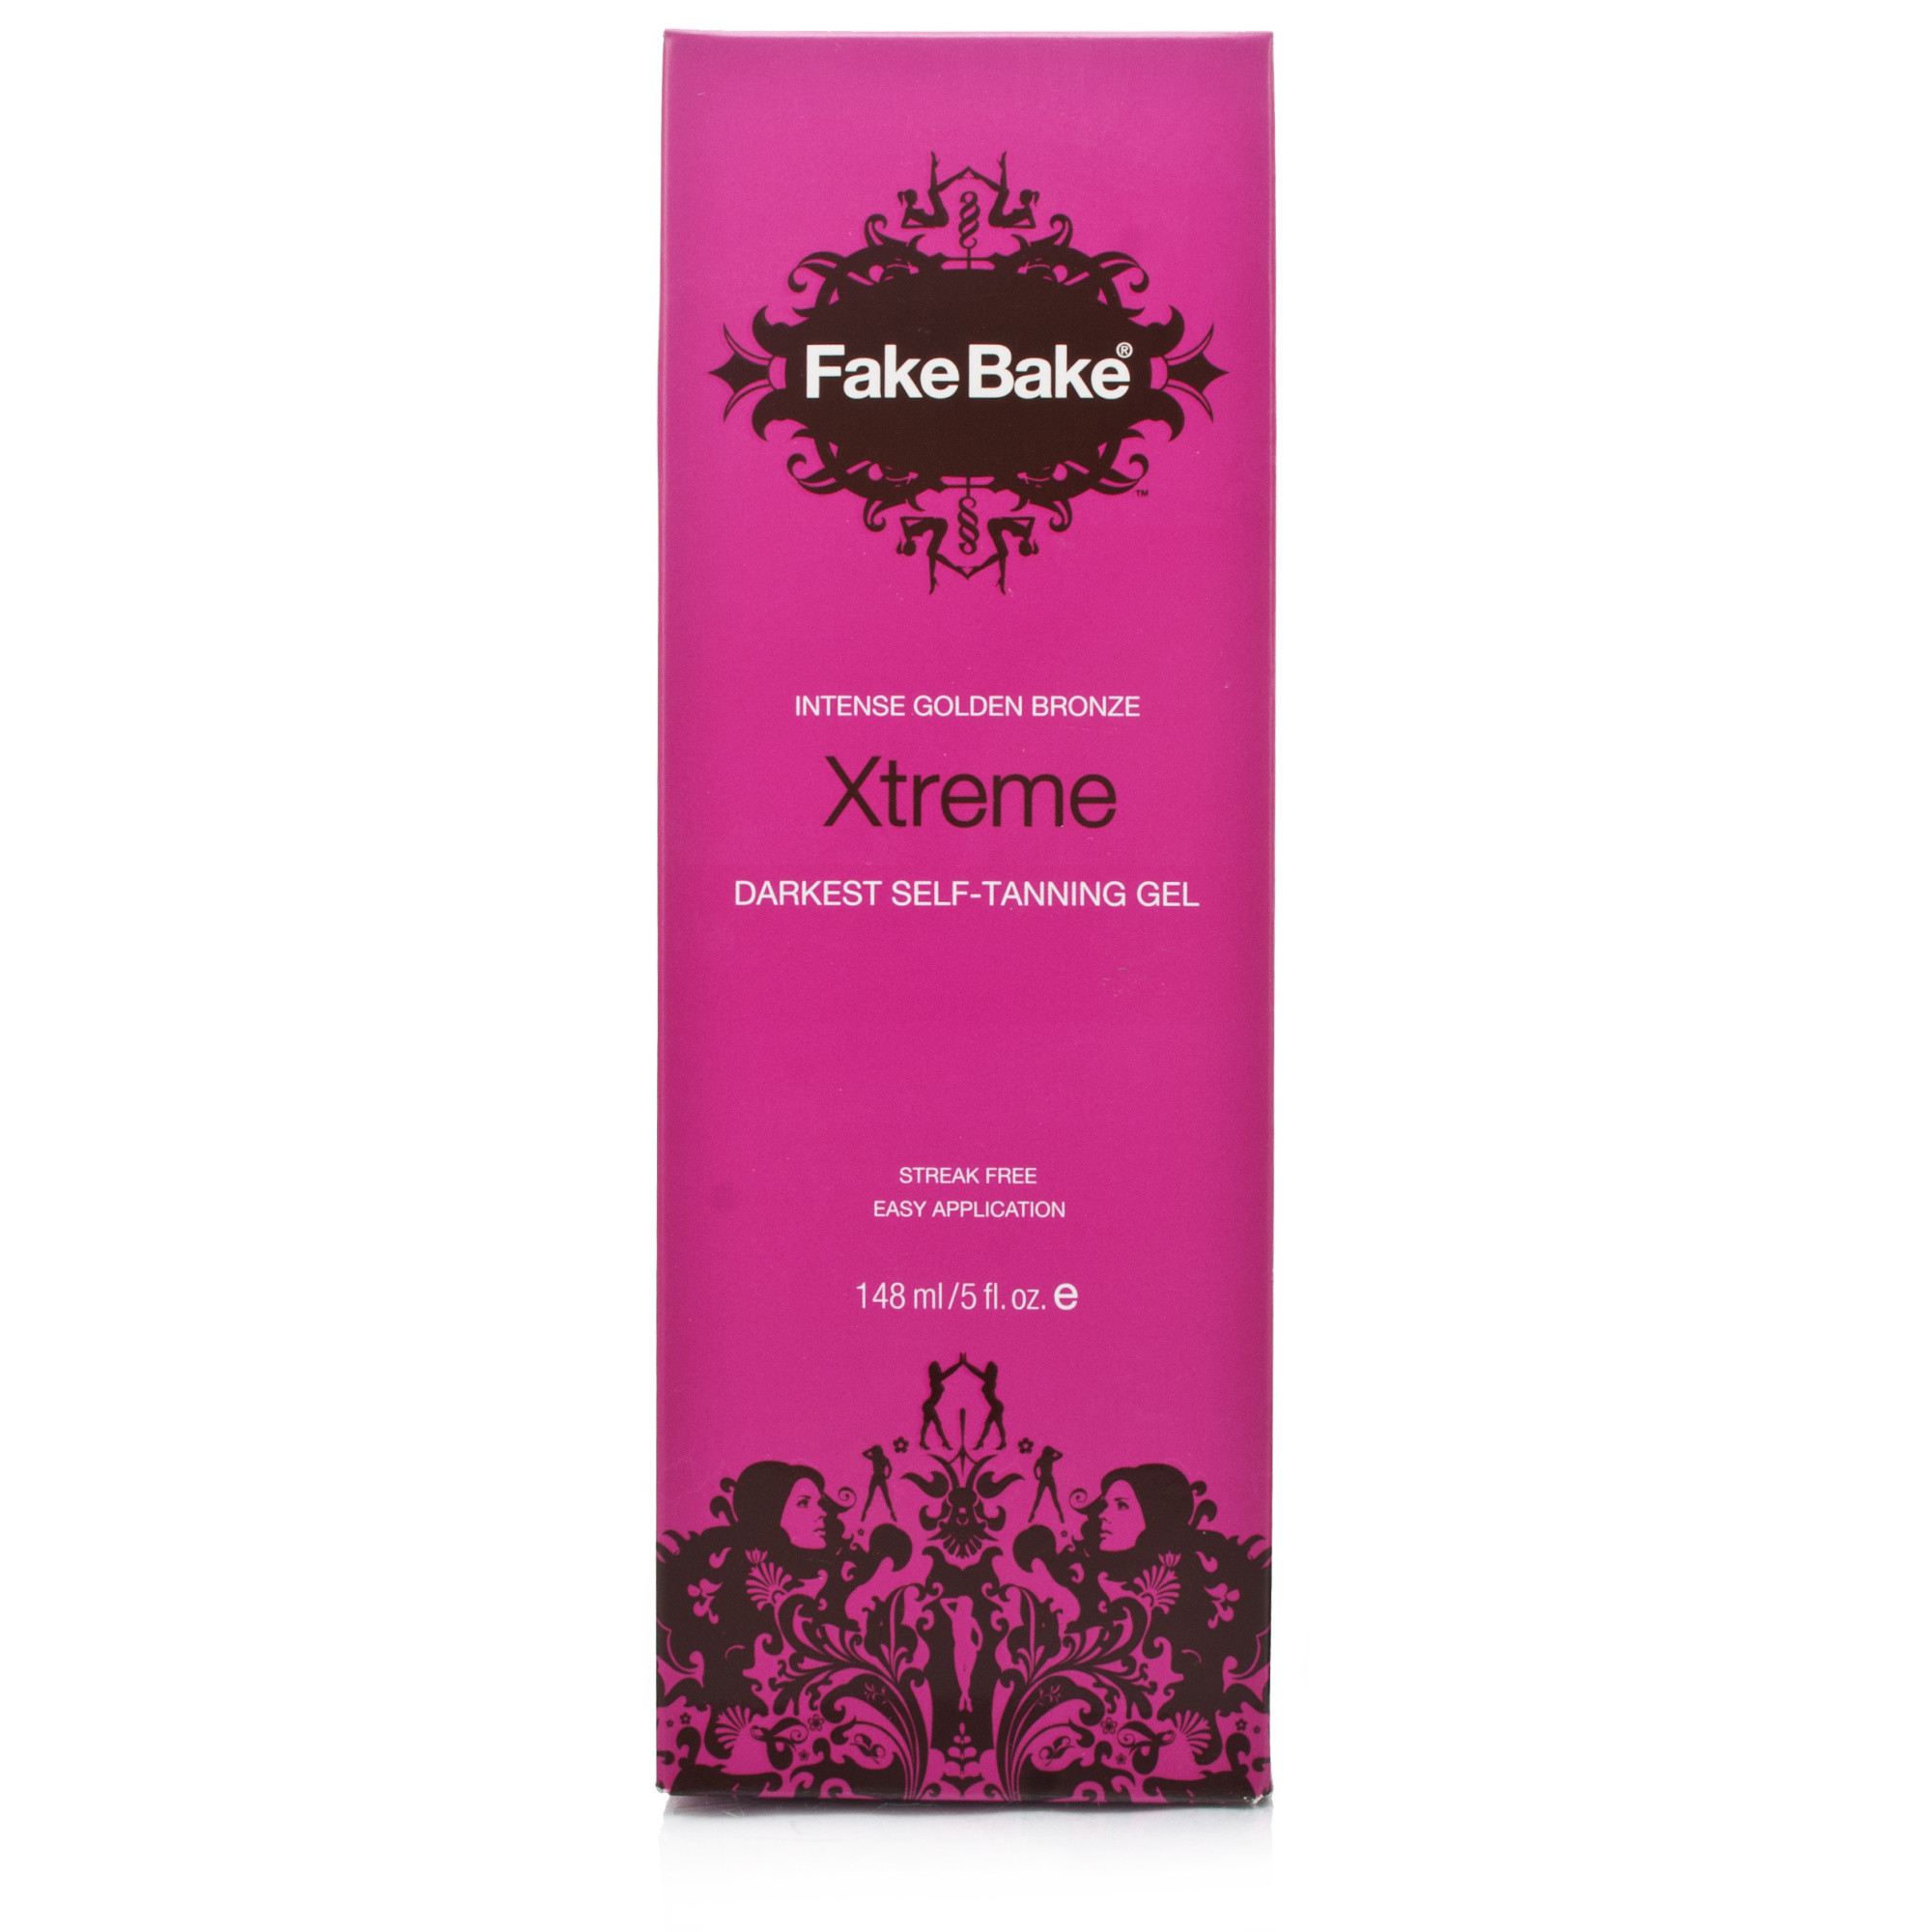 Fake Bake Xtreme Darkest Self Tanning Gel